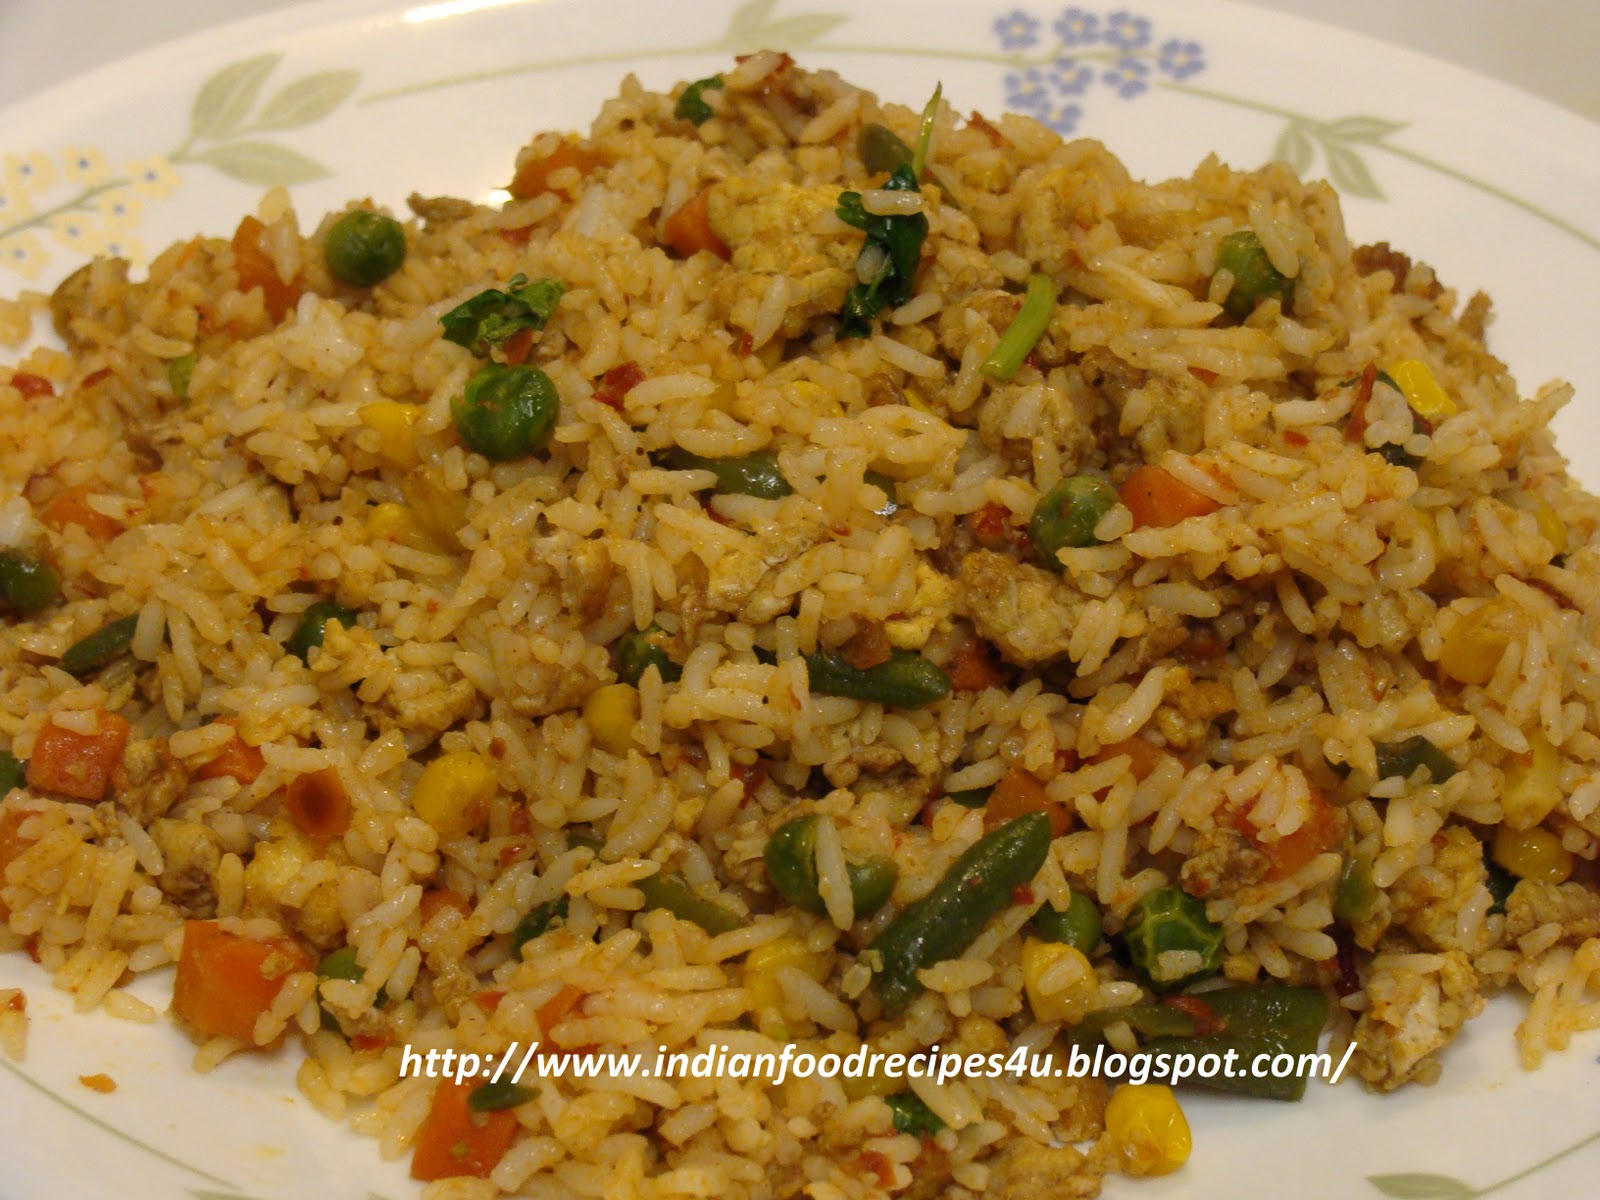 Indian Food Recipes For You: Egg Fried Rice - Indian style